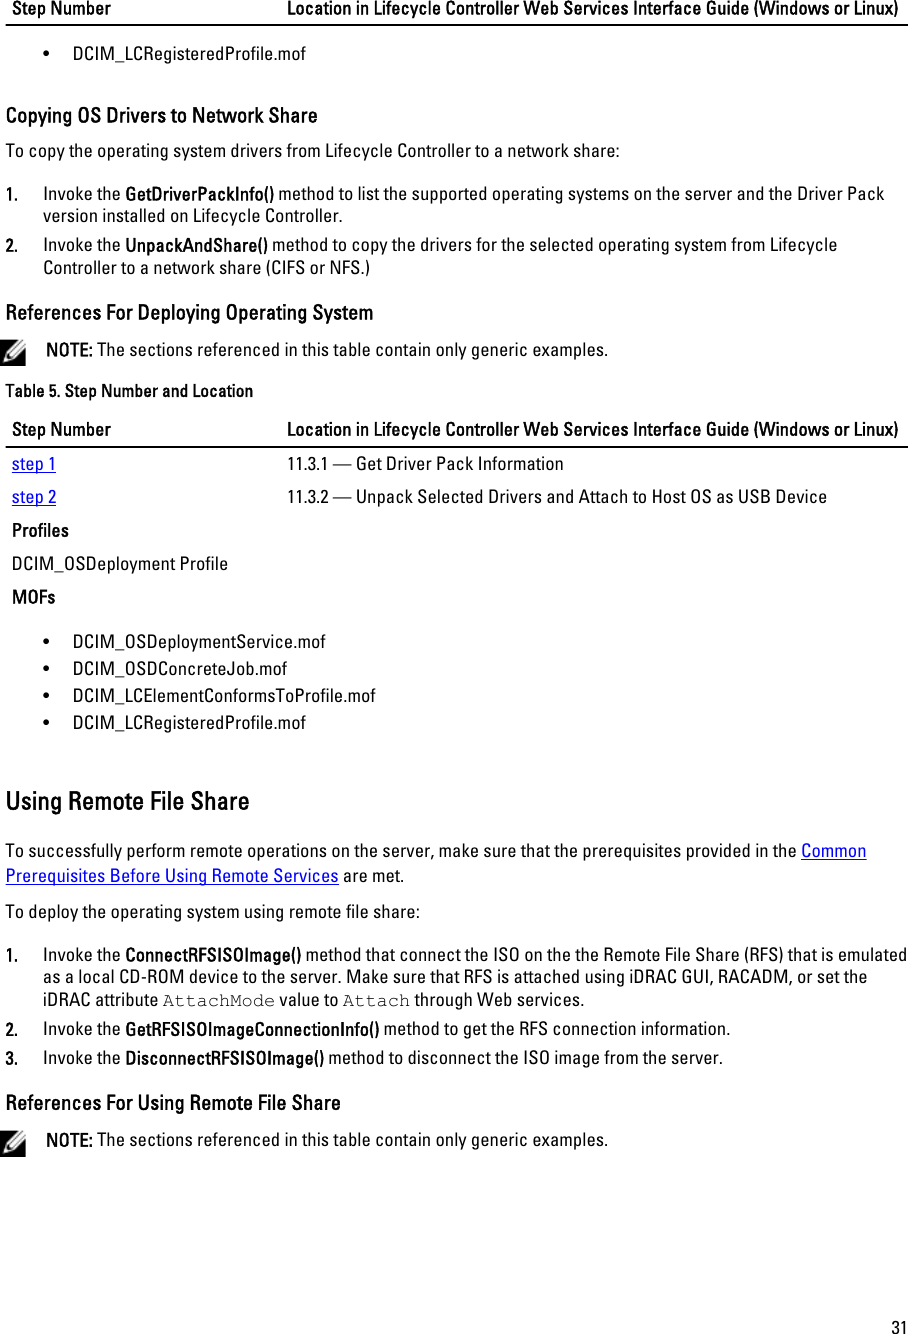 Dell Lifecycle Controller 2 Version 1 00 Users Manual 1 00